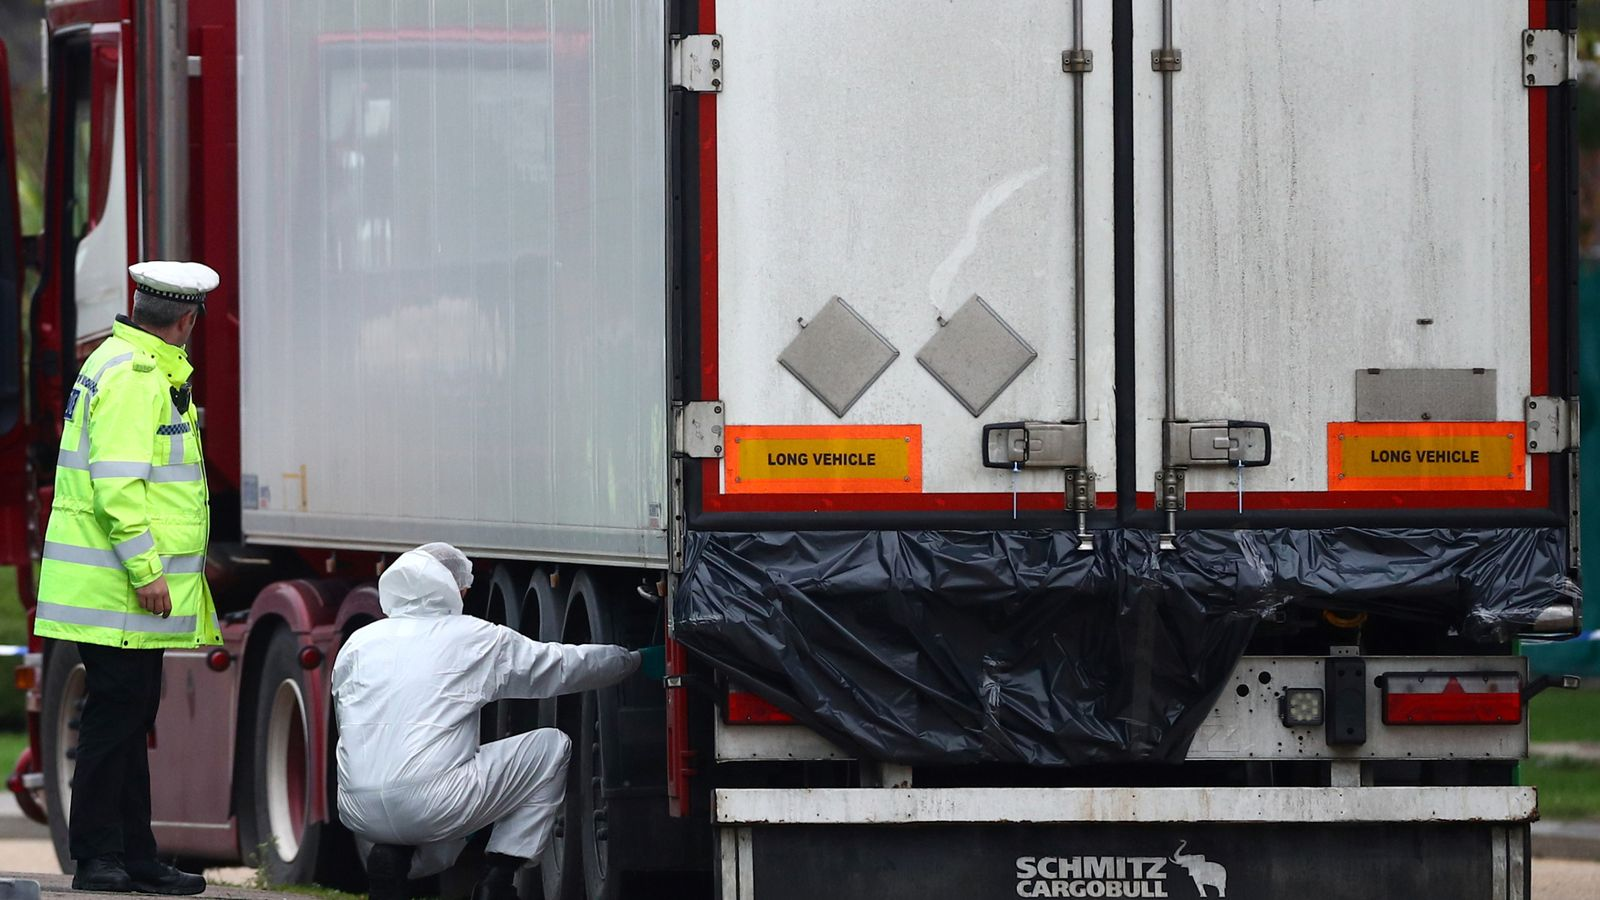 Man arrested in Ireland in connection with 39 Vietnamese migrants found dead on Essex lorry